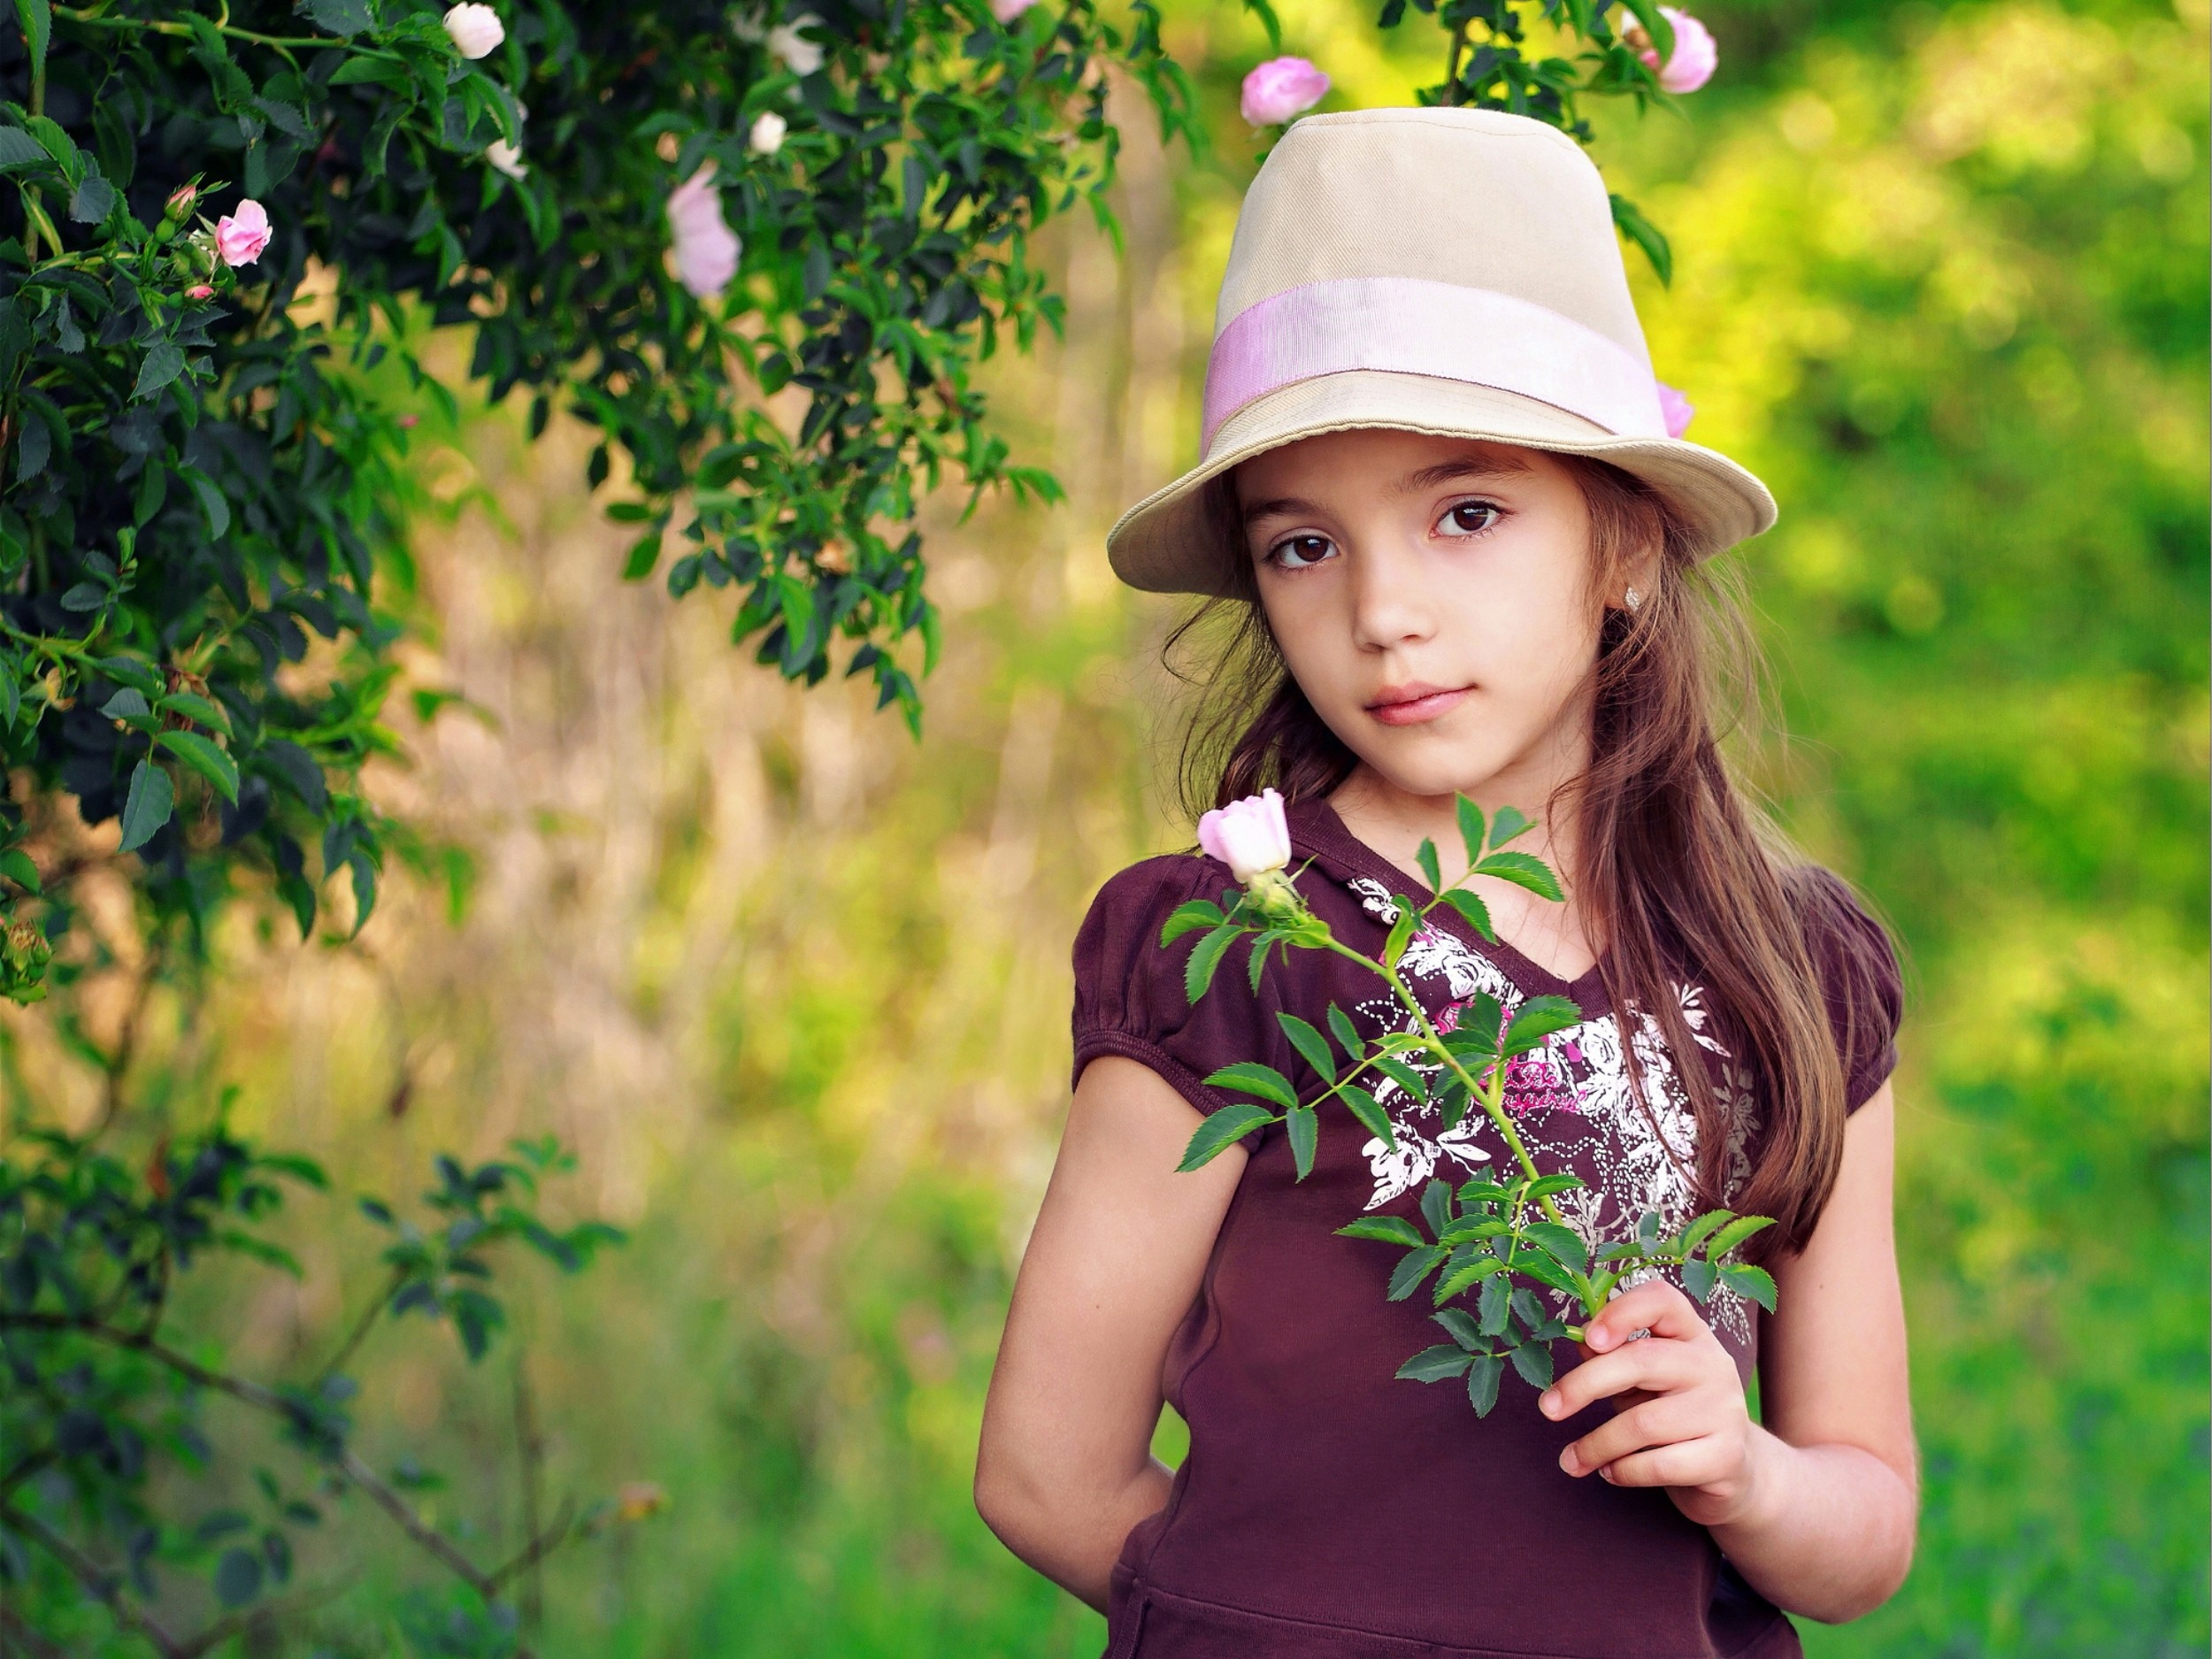 Cute Babies Wallpapers Themes Android Apps on Google Play | HD Wallpapers |  Pinterest | Baby wallpaper, Wallpaper and Wallpapers android